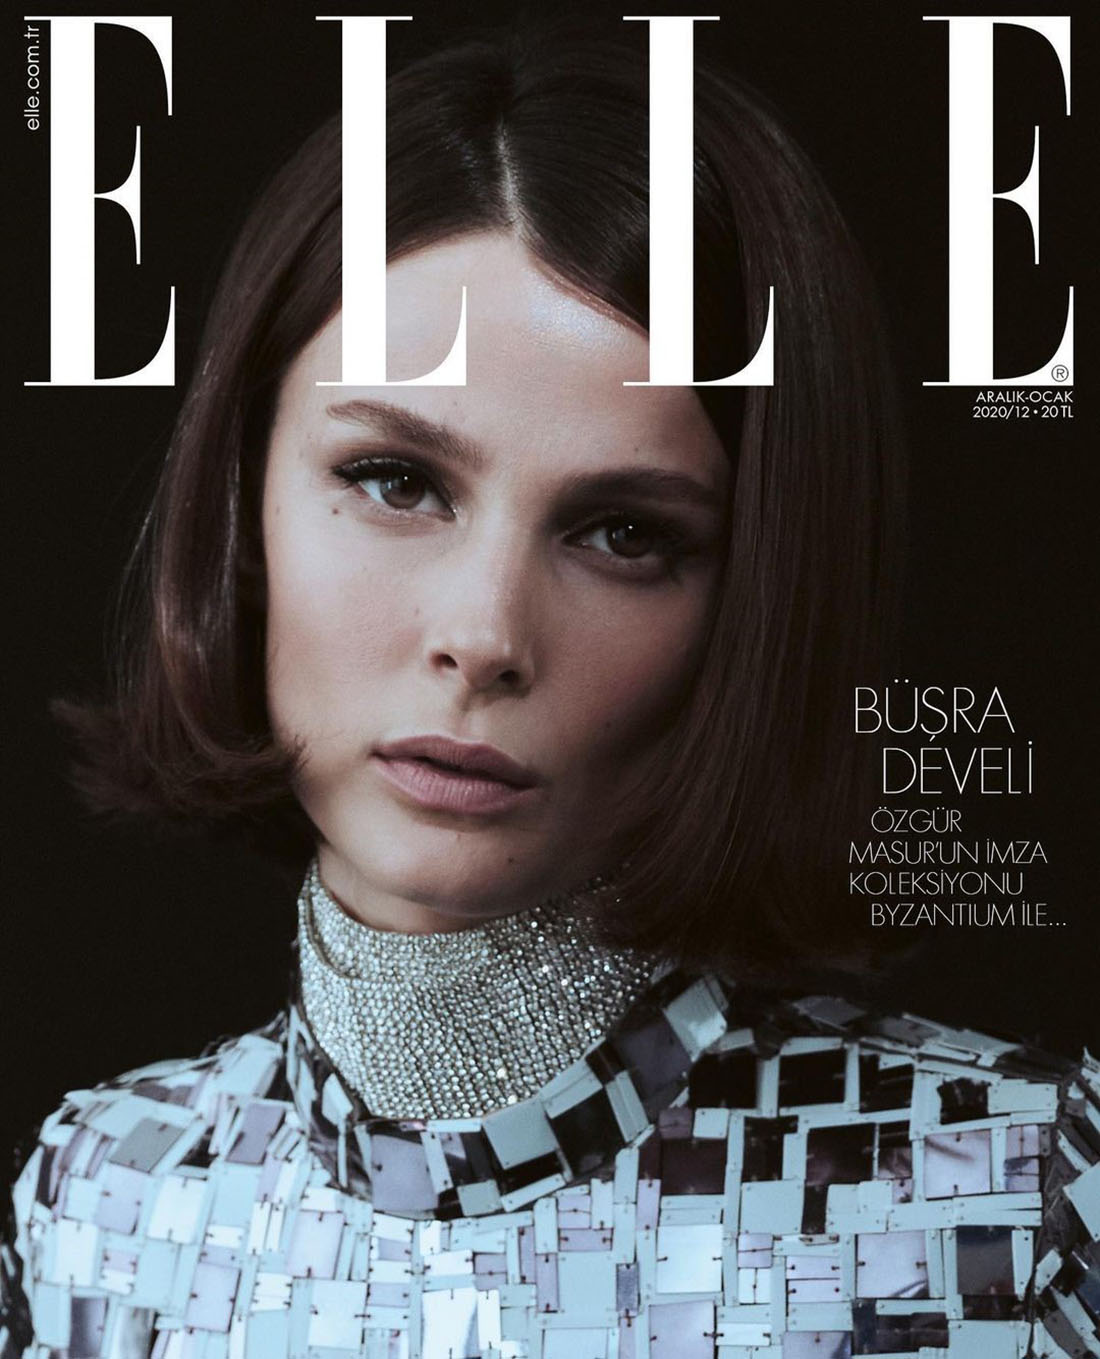 Büşra Develi covers Elle Turkey December 2020 January 2021 by Emre Ünal